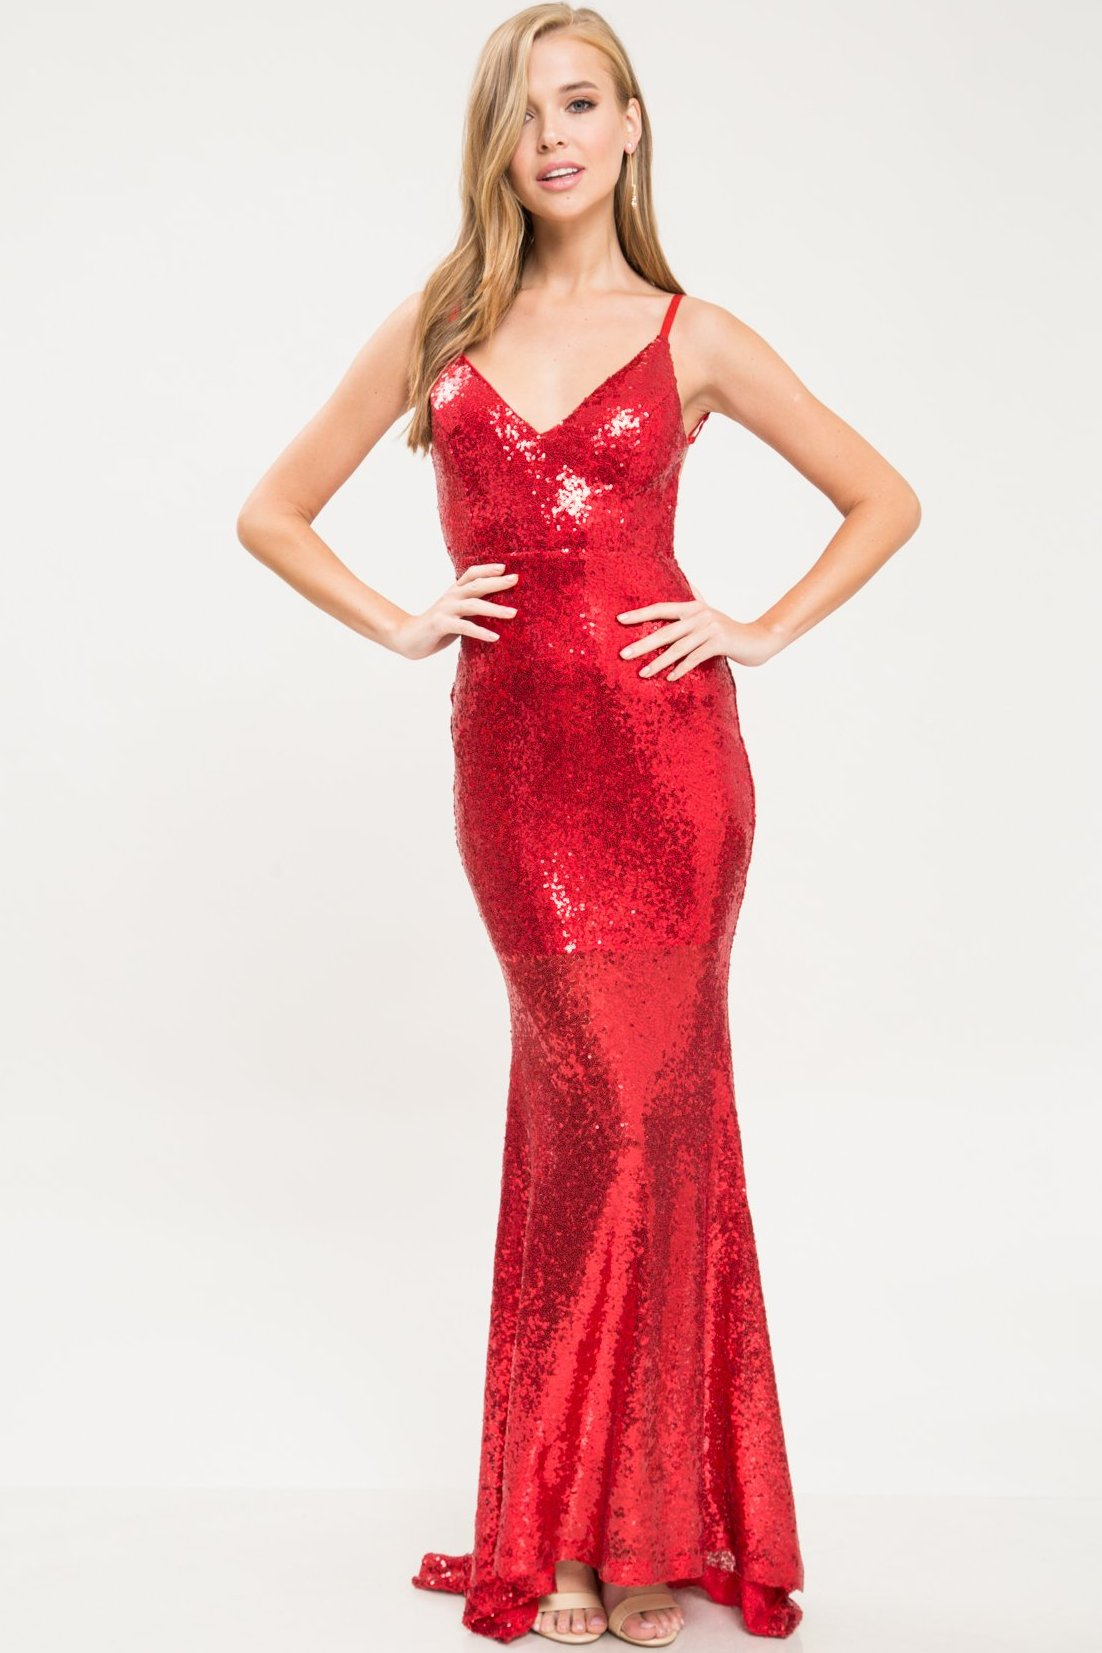 Lady In Red Sequin Gown